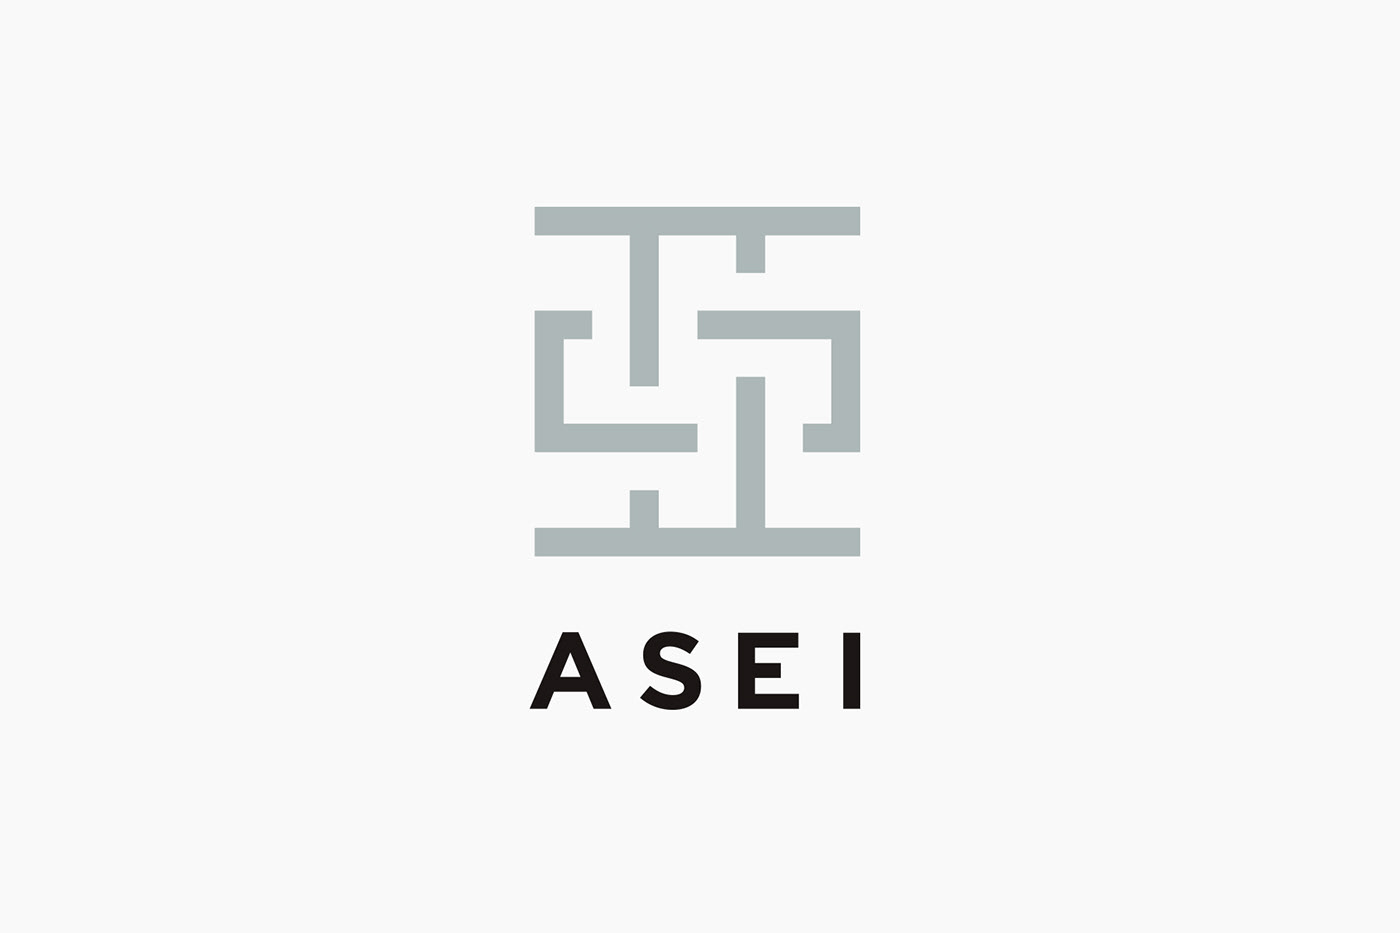 architecture kanji Chinese Character asia 建築事務所 typography   タイポグラフィ 漢字 漢字ロゴ